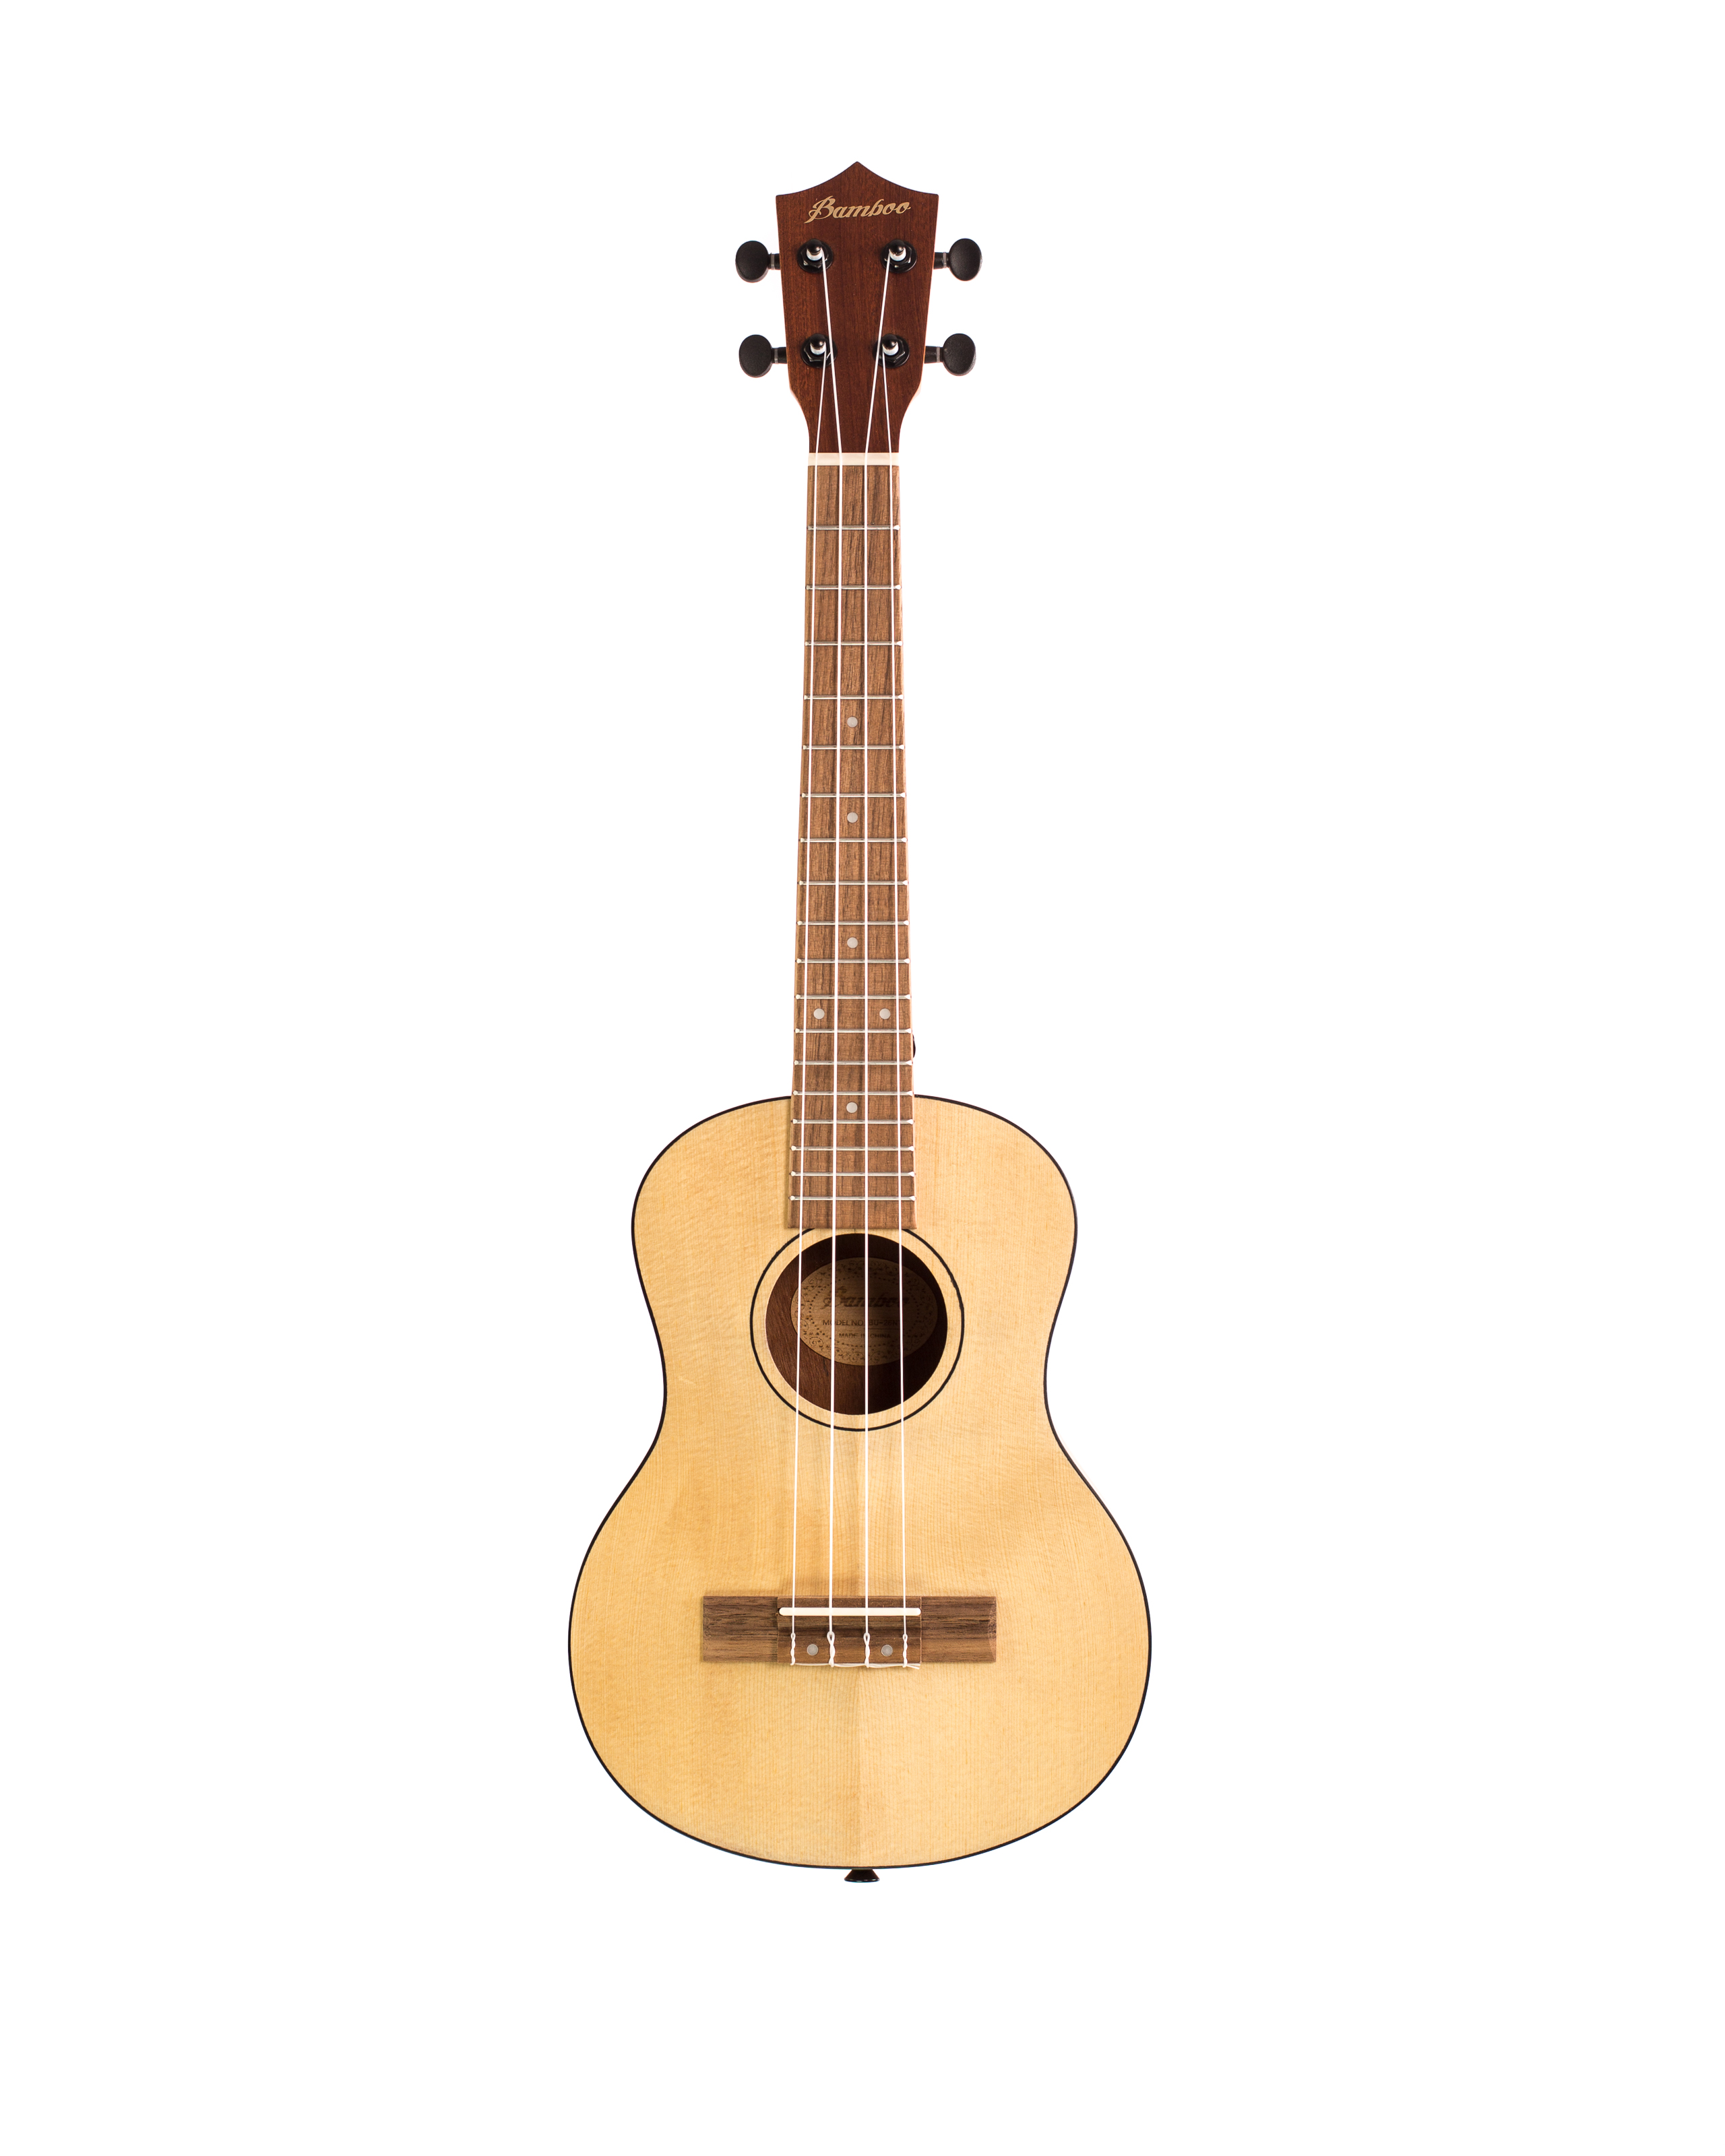 BAMBOO Natural Classic Tenor Ukulele Classic Series Acoustic | For Beginners and Professionals | Wood Spruce, Sapele & Walnut | With Gig Bag (Special Edition)